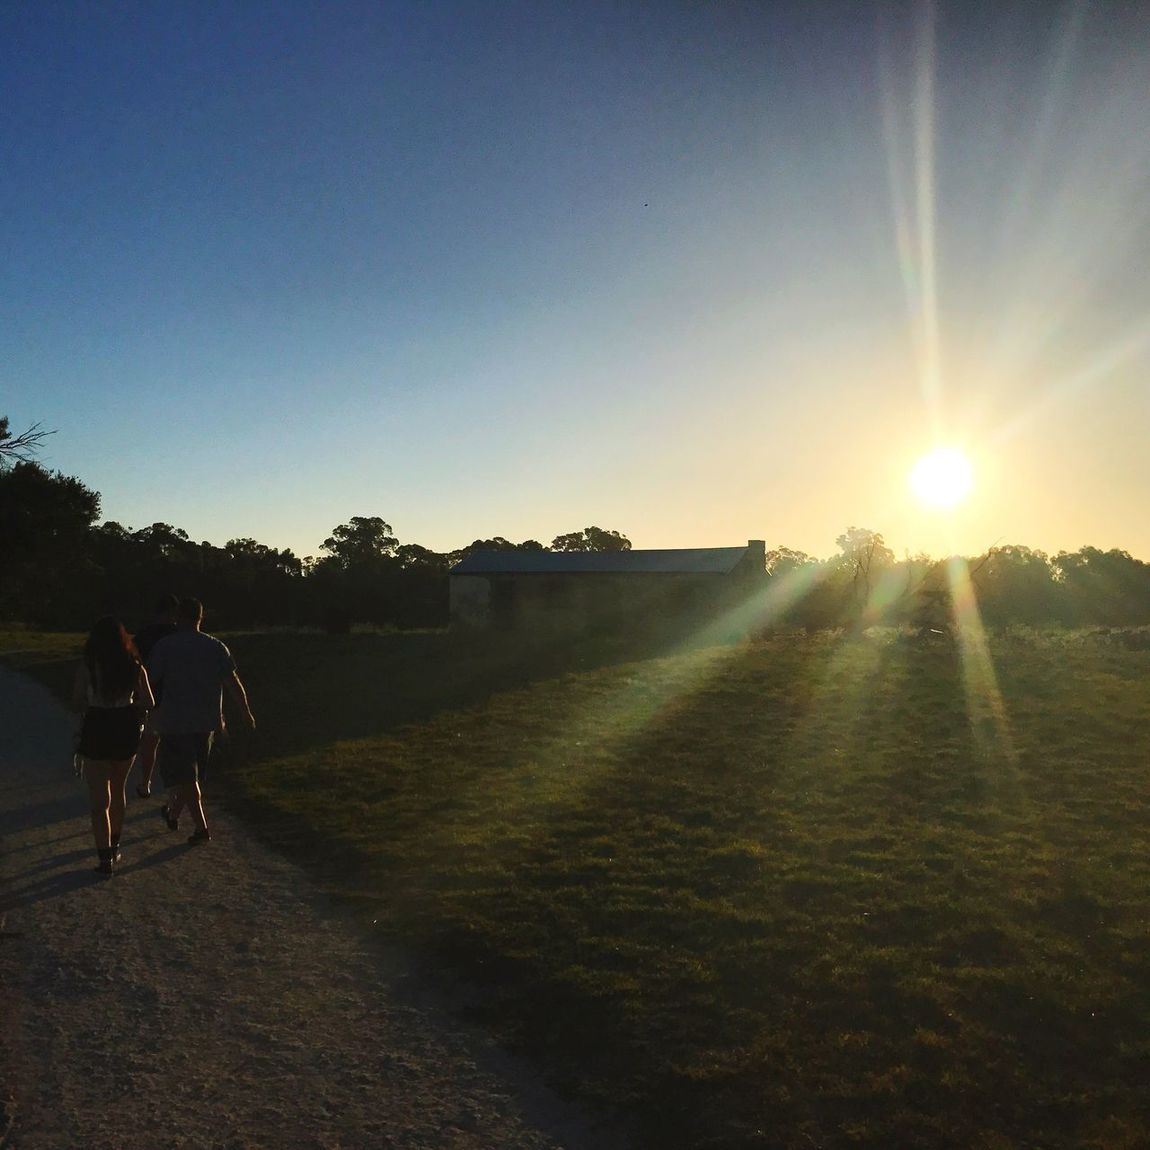 Sunset Sun Sunlight Walking Full Length Two People Field Nature Clear Sky Real People Men Outdoors Sky Friendship Mammal Day People